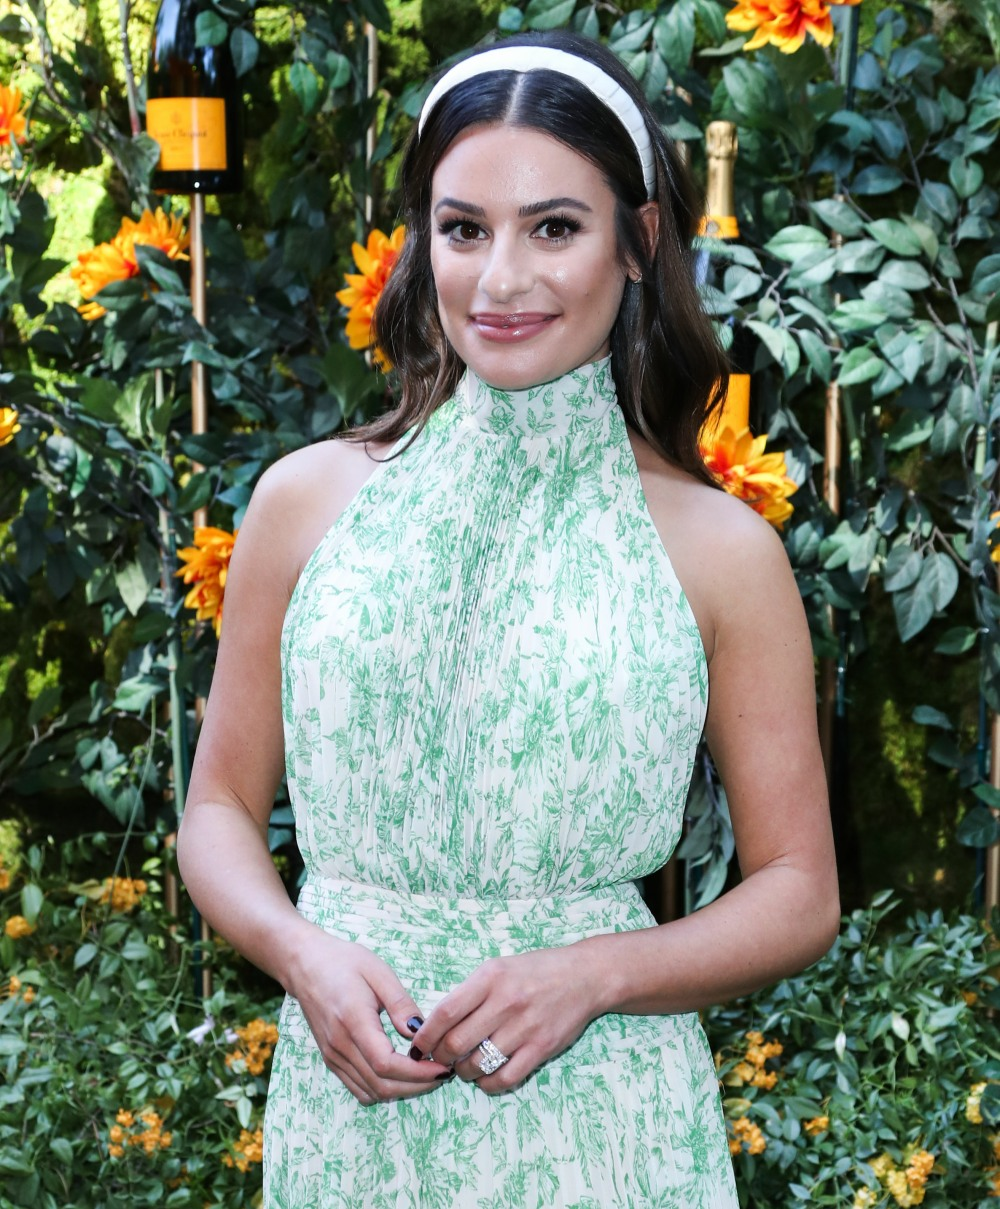 Lea Michele arrives at the 10th Annual Veuve Clicquot Polo Classic Los Angeles held at Will Rogers State Historic Park on October 5, 2019 in Pacific Palisades, Los Angeles, California, United States.